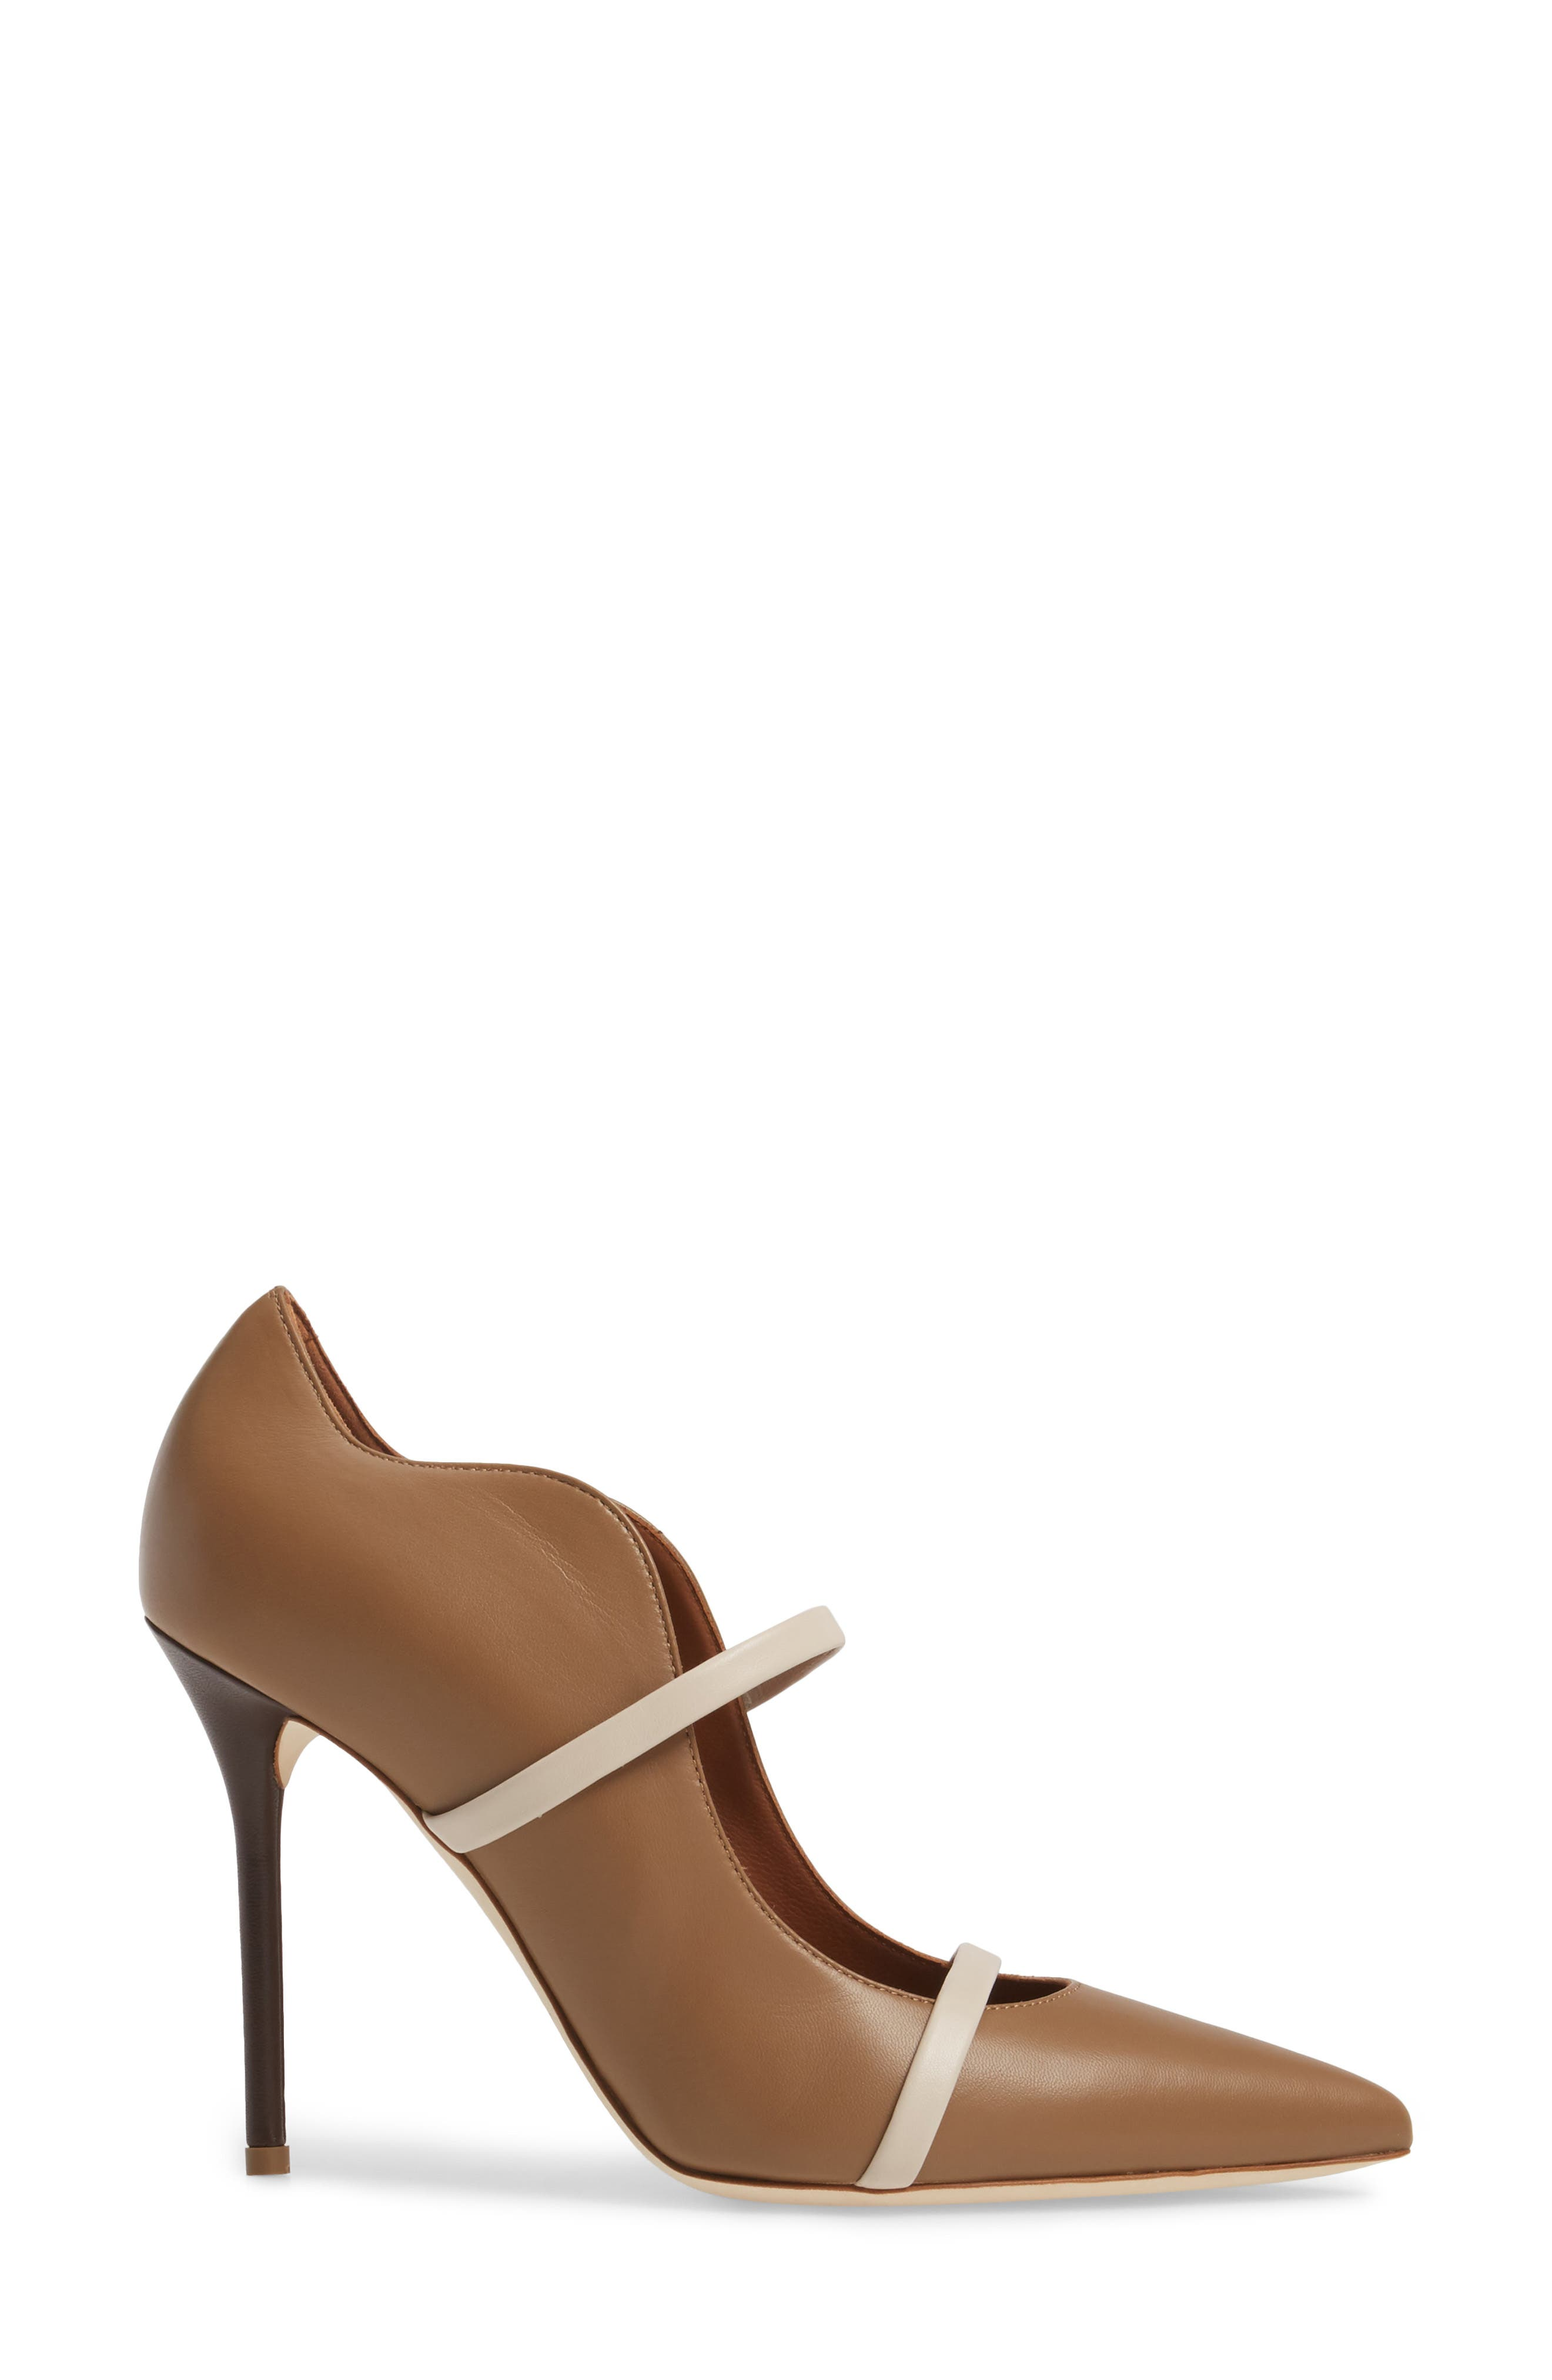 Maureen Double Band Pump,                             Alternate thumbnail 3, color,                             Chocolate/ White Leather